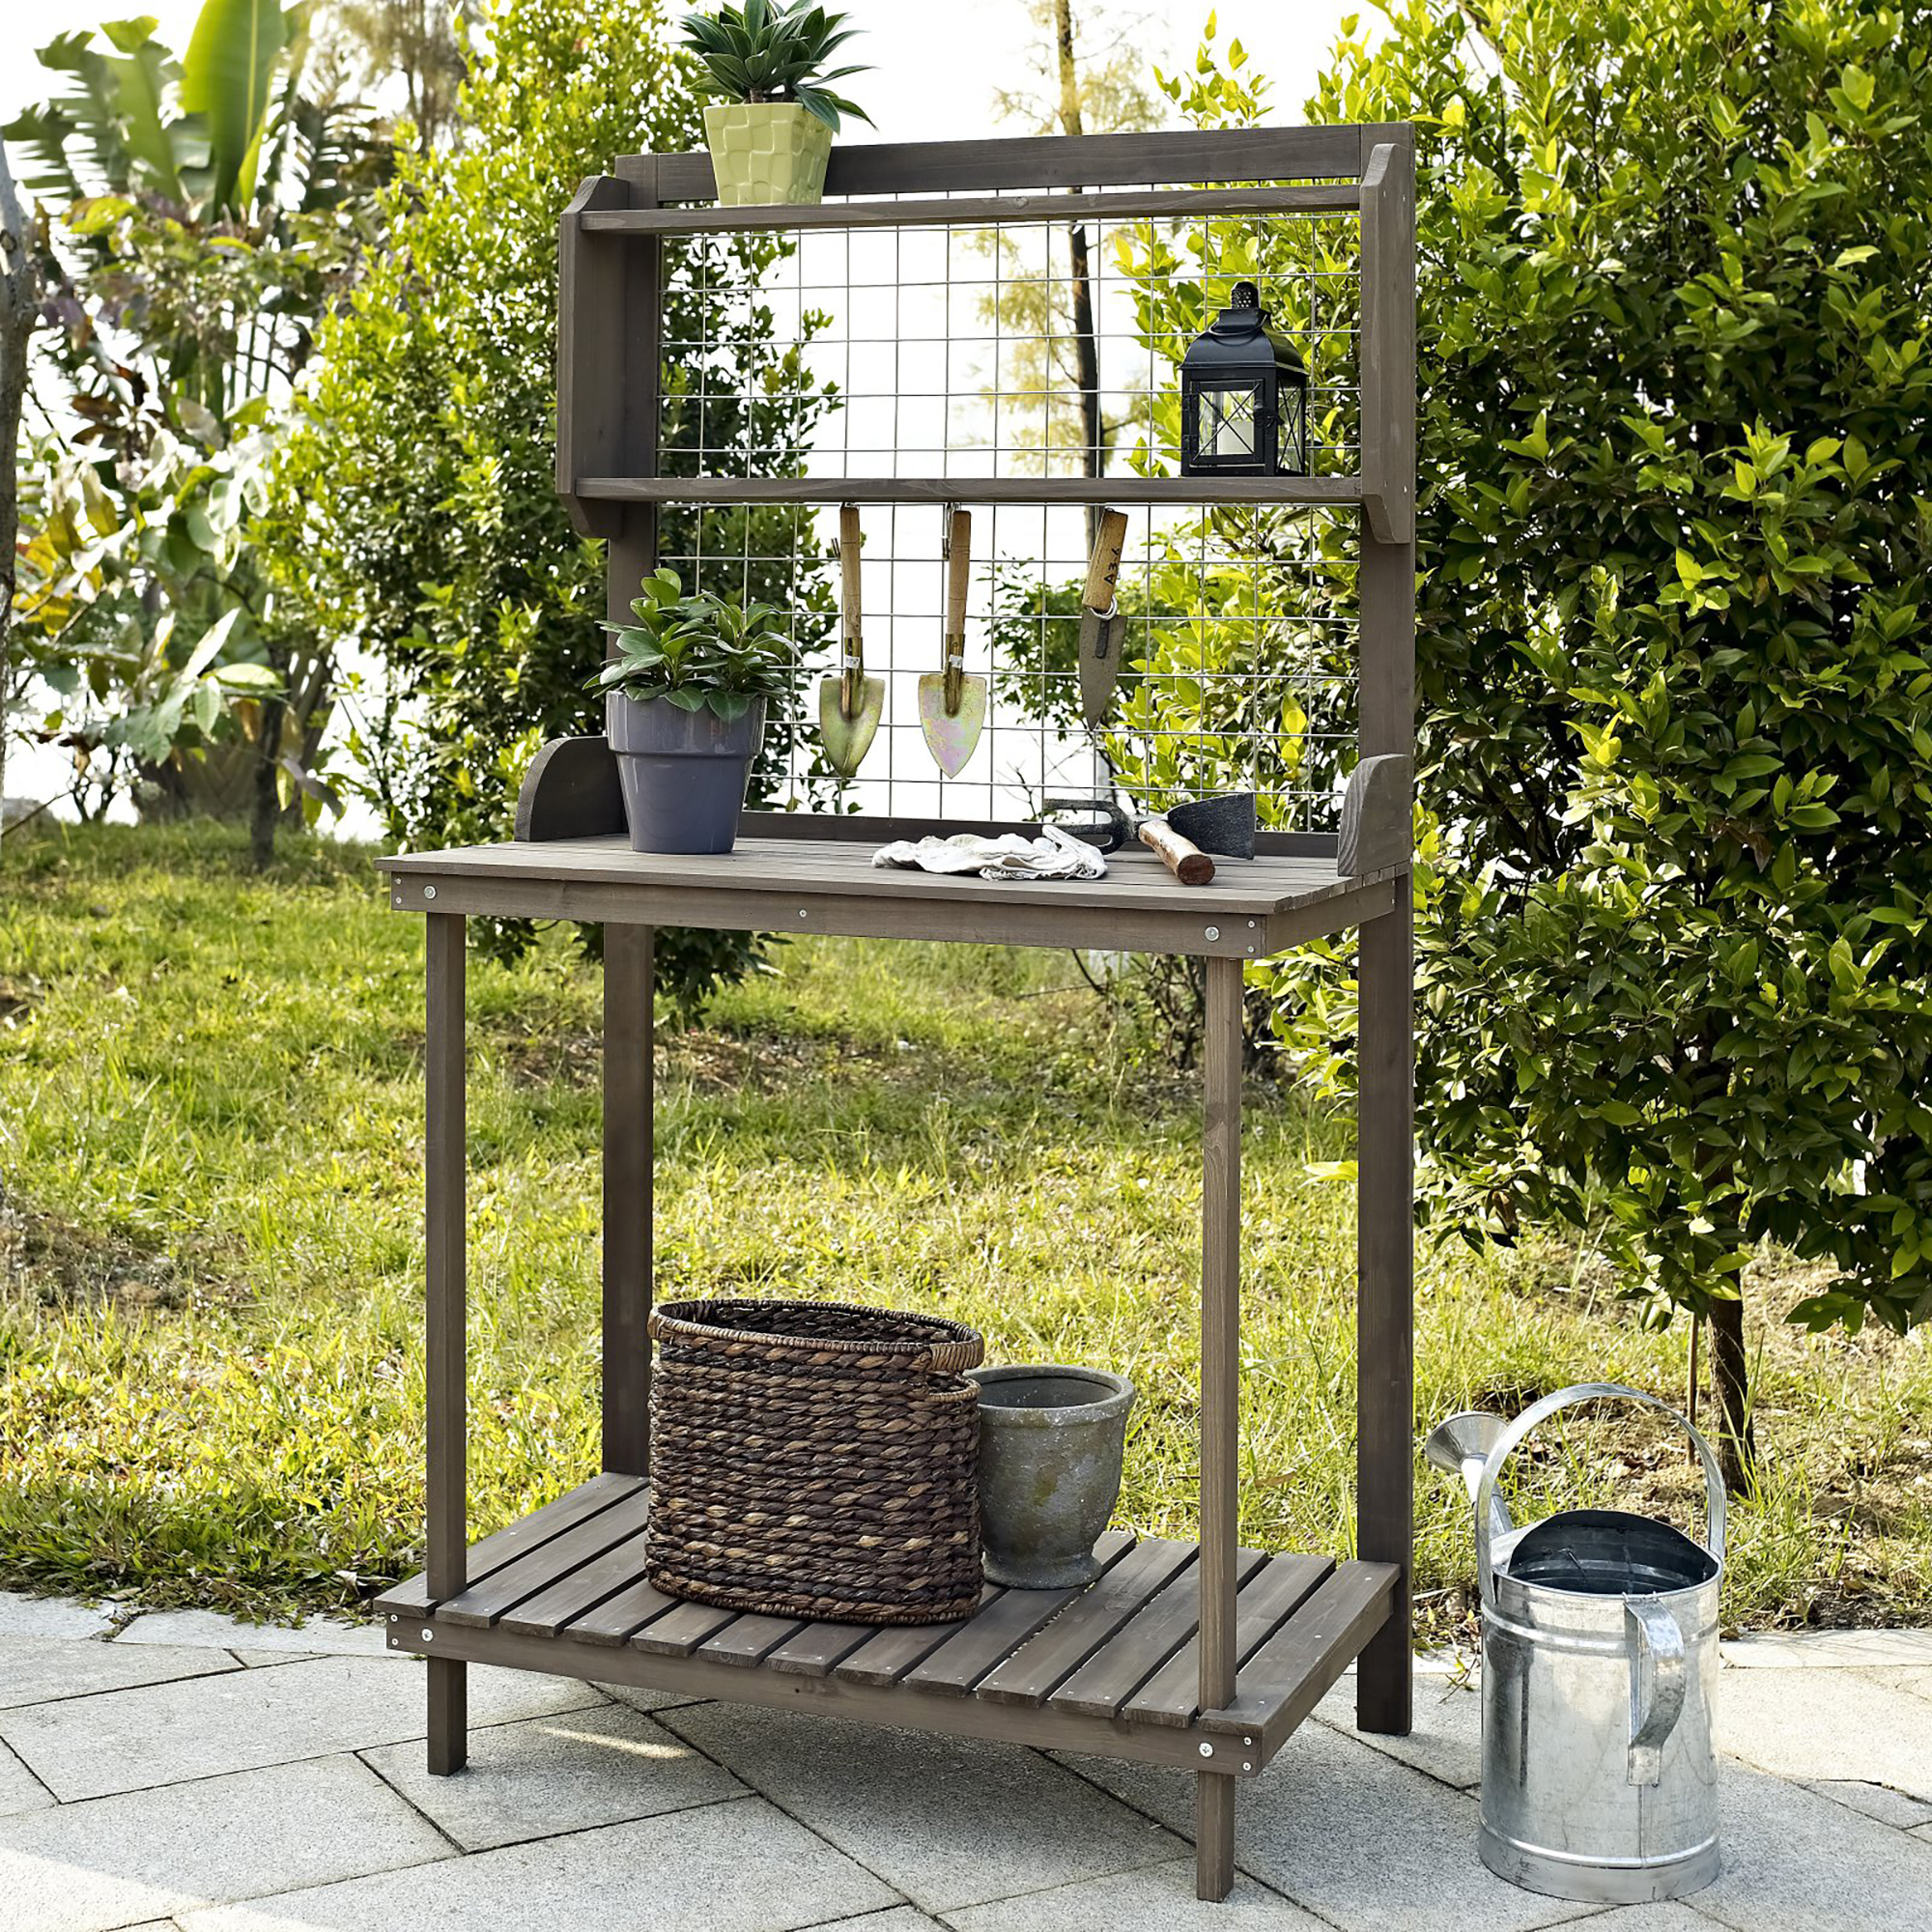 Coral Coast Outdoor Potting Bench with Hanging Grate